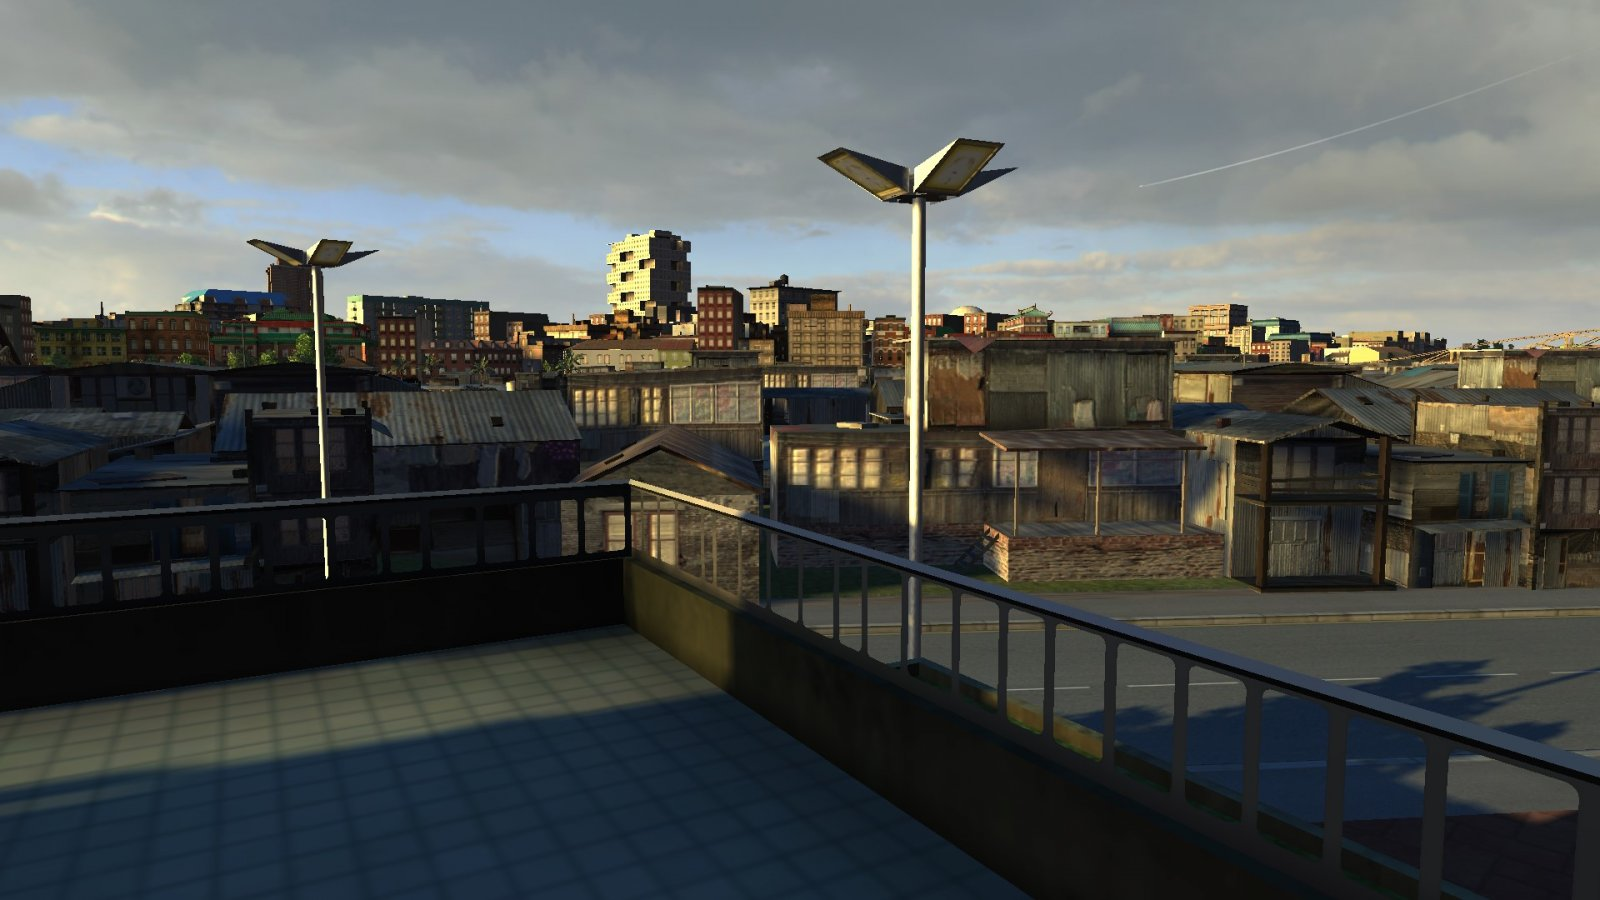 cxl_screenshot_kotanagara_26.jpg